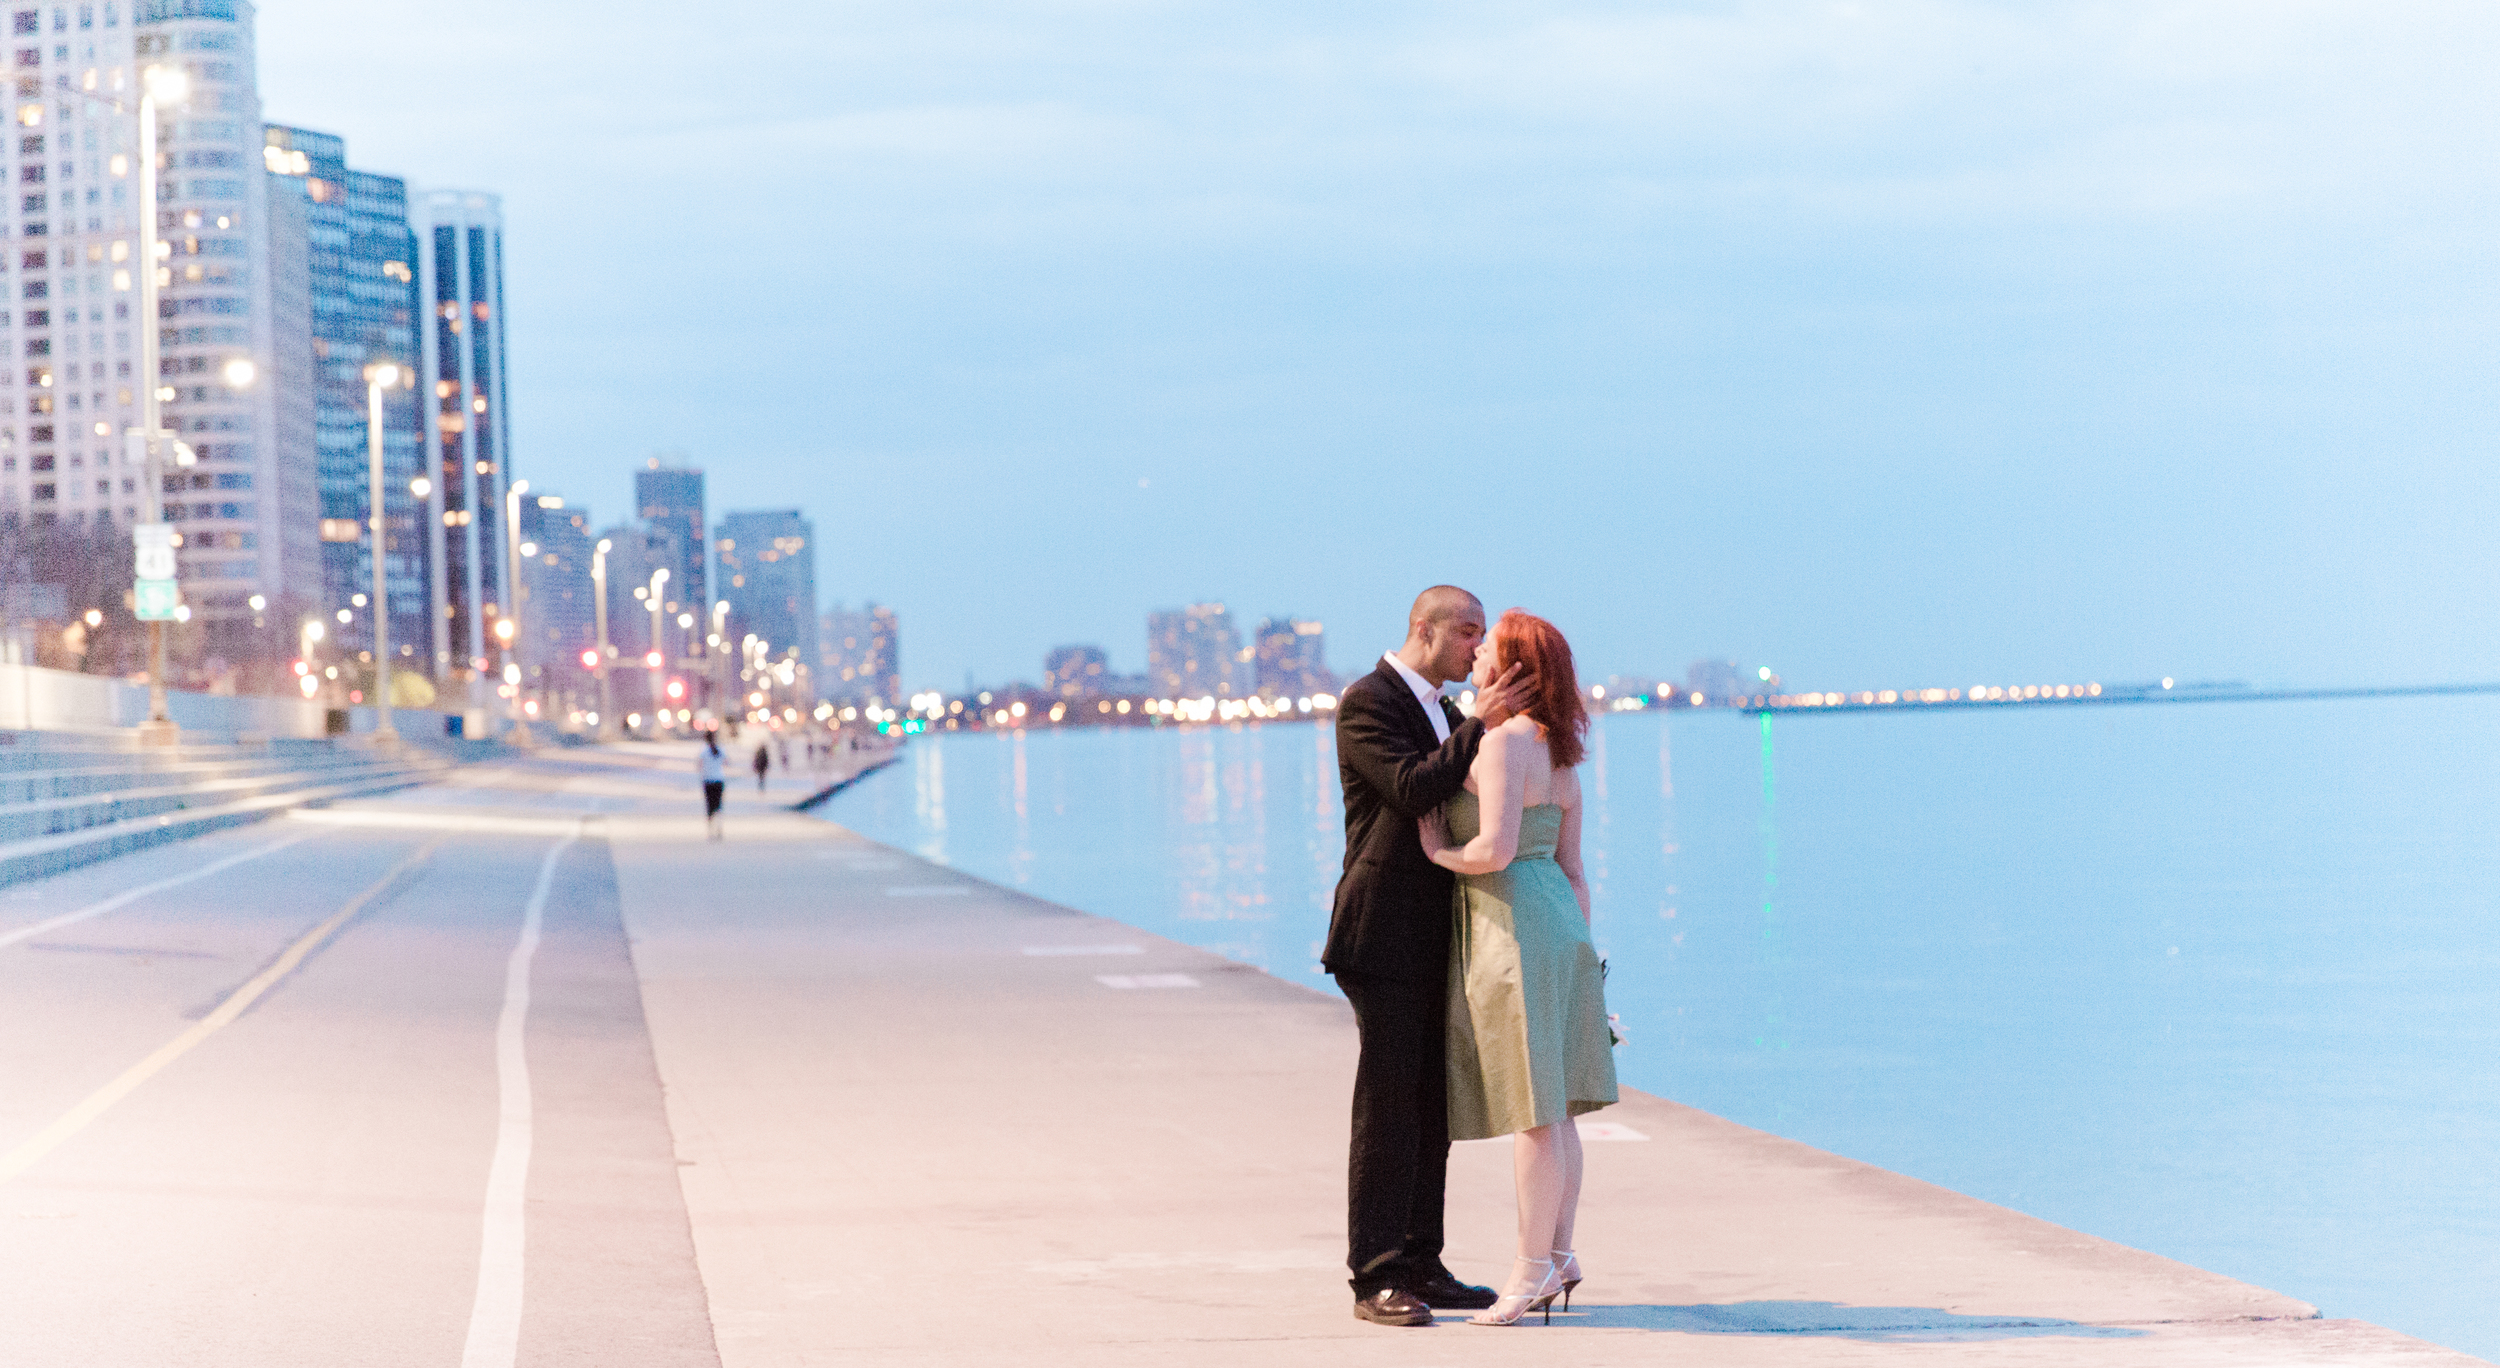 Chicago Elopement Photography by Bonphotage